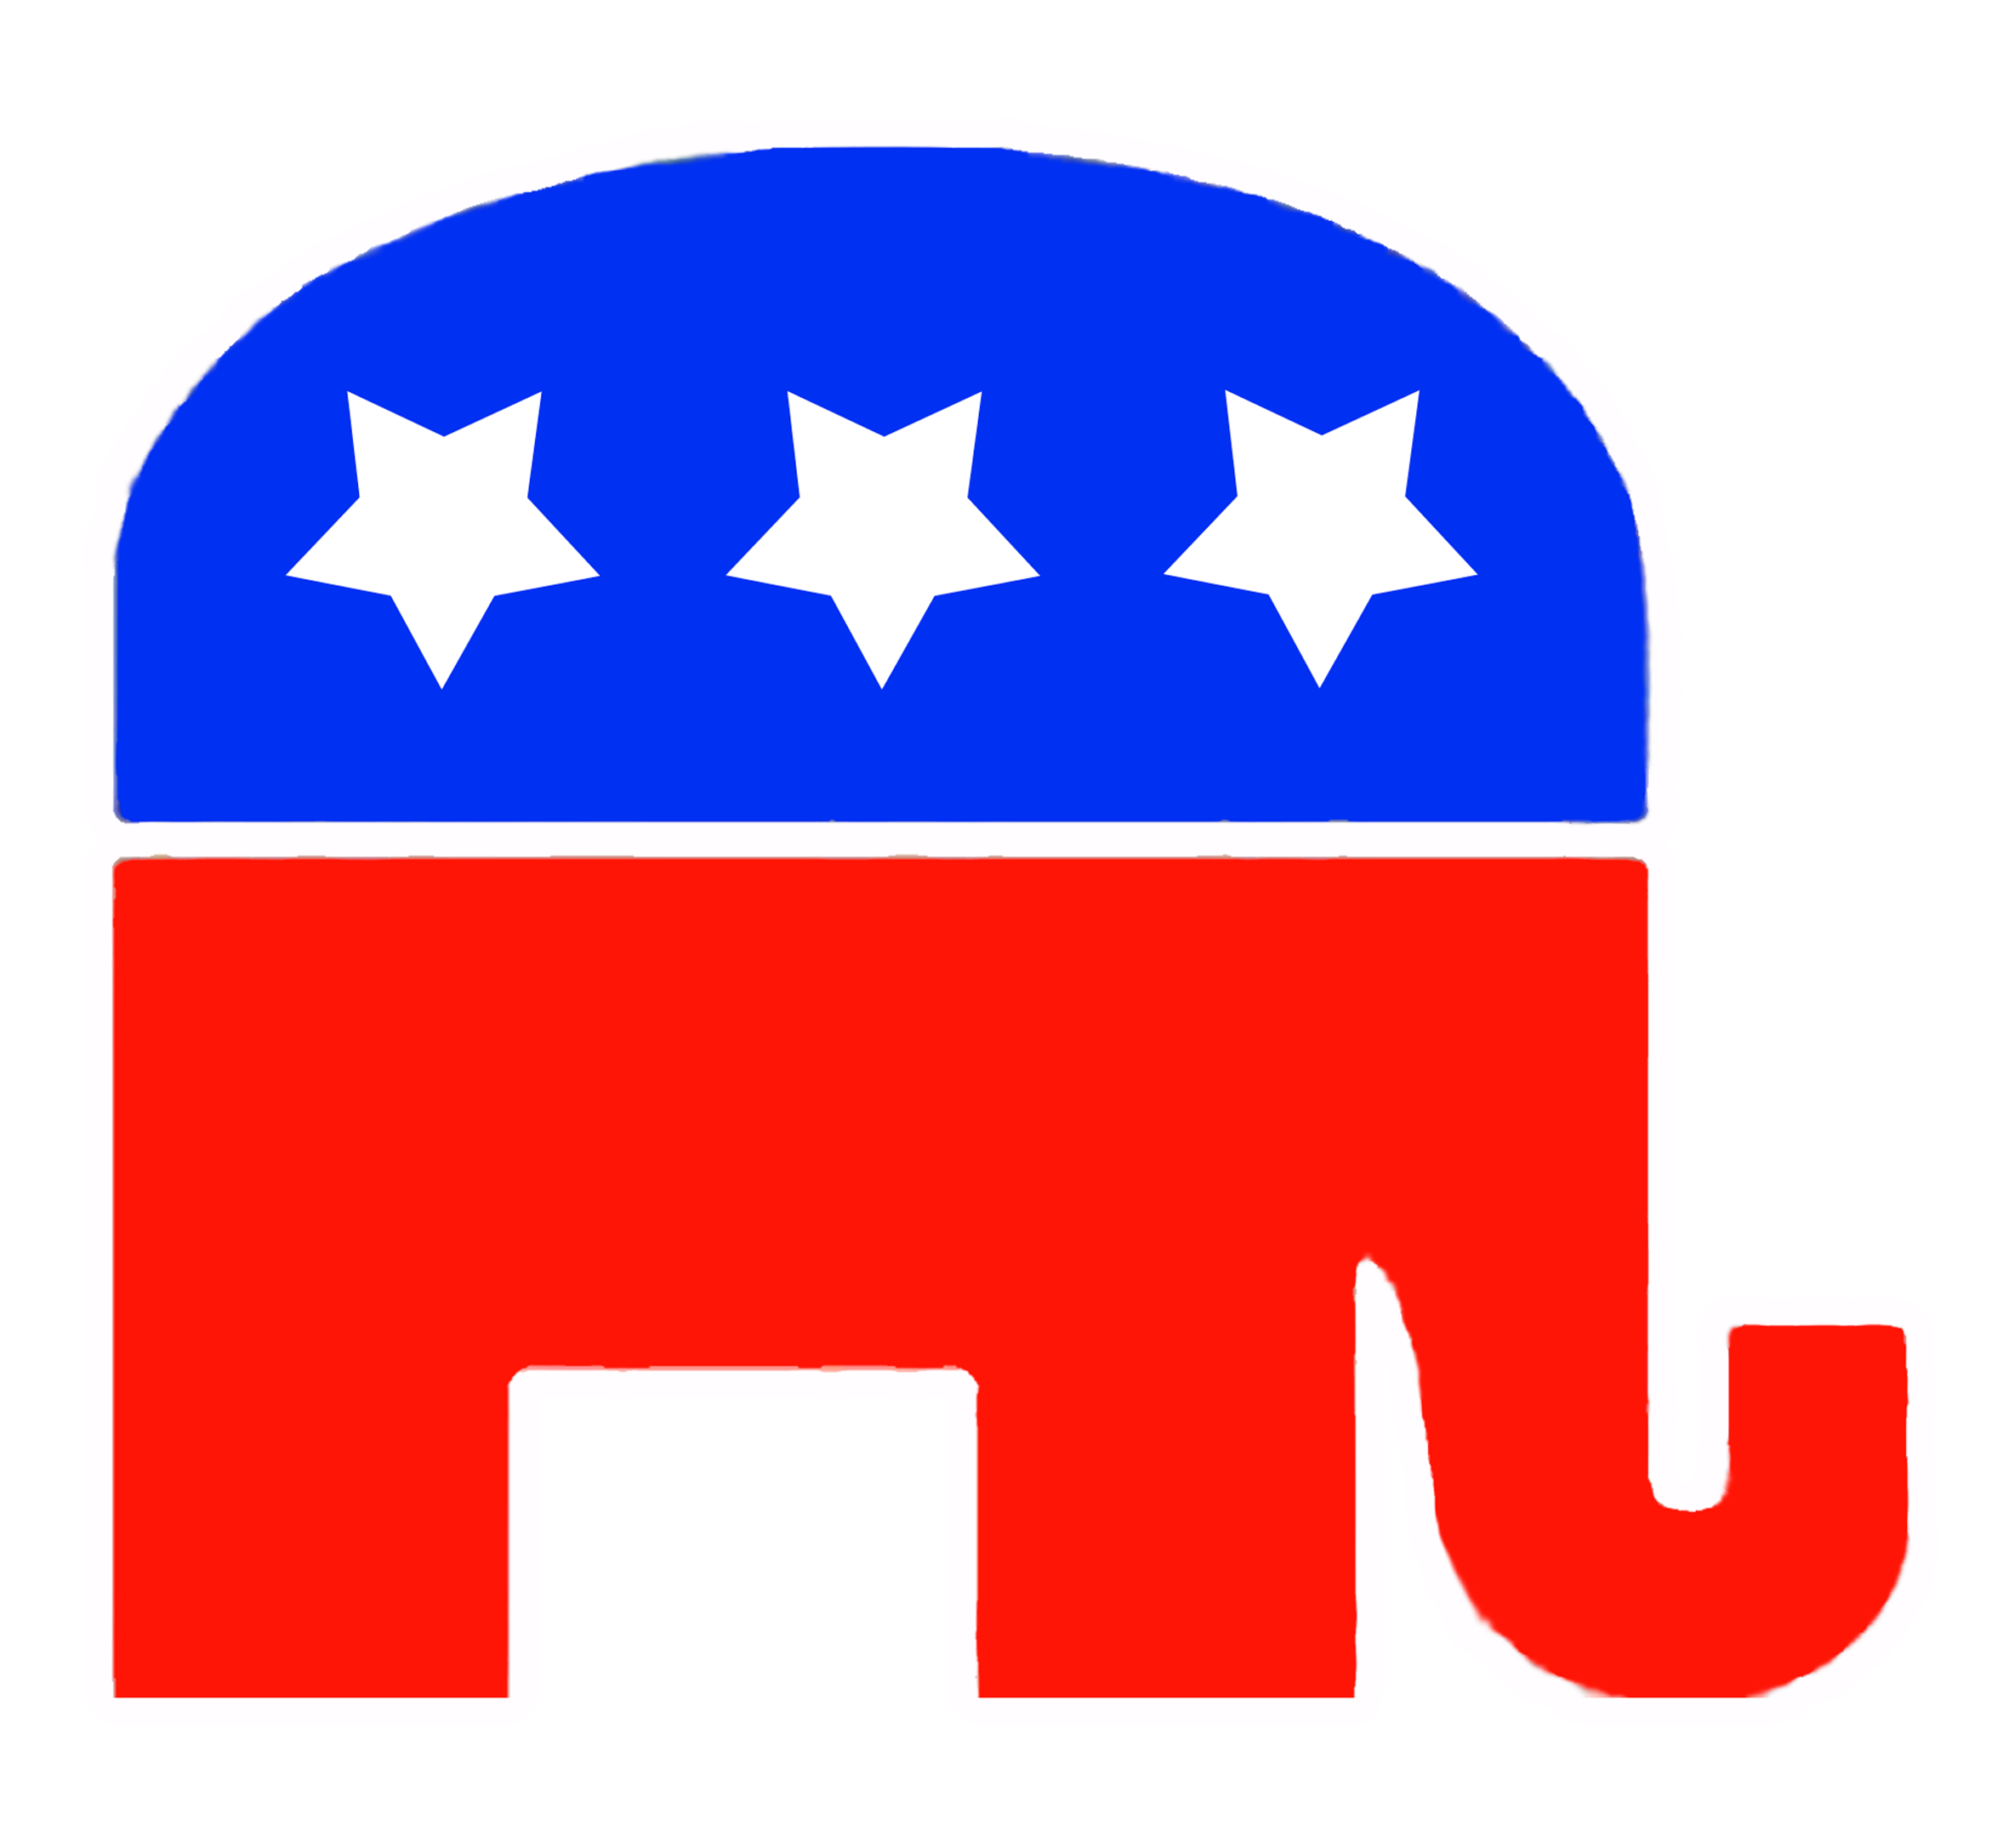 Democrat And Republican Symbol Republican Party Logo ...